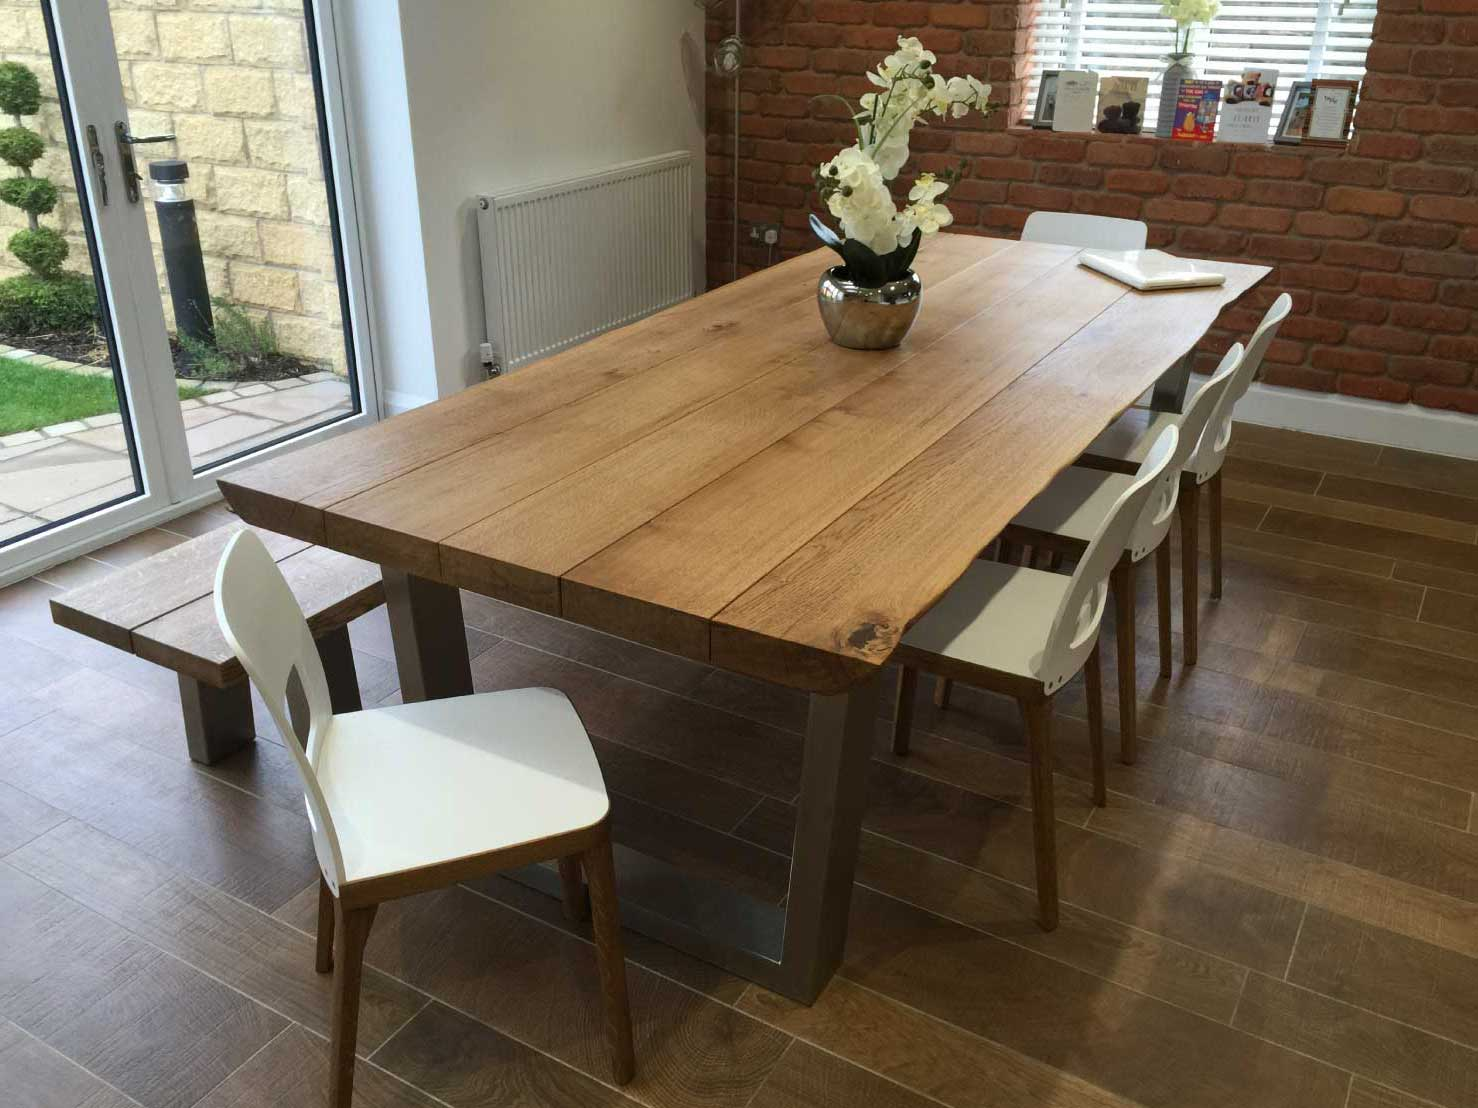 dining-table-and-chair-set-from-abacus-tables-komodo-2.4m-matching-chairs-&-bench-project-341-v1